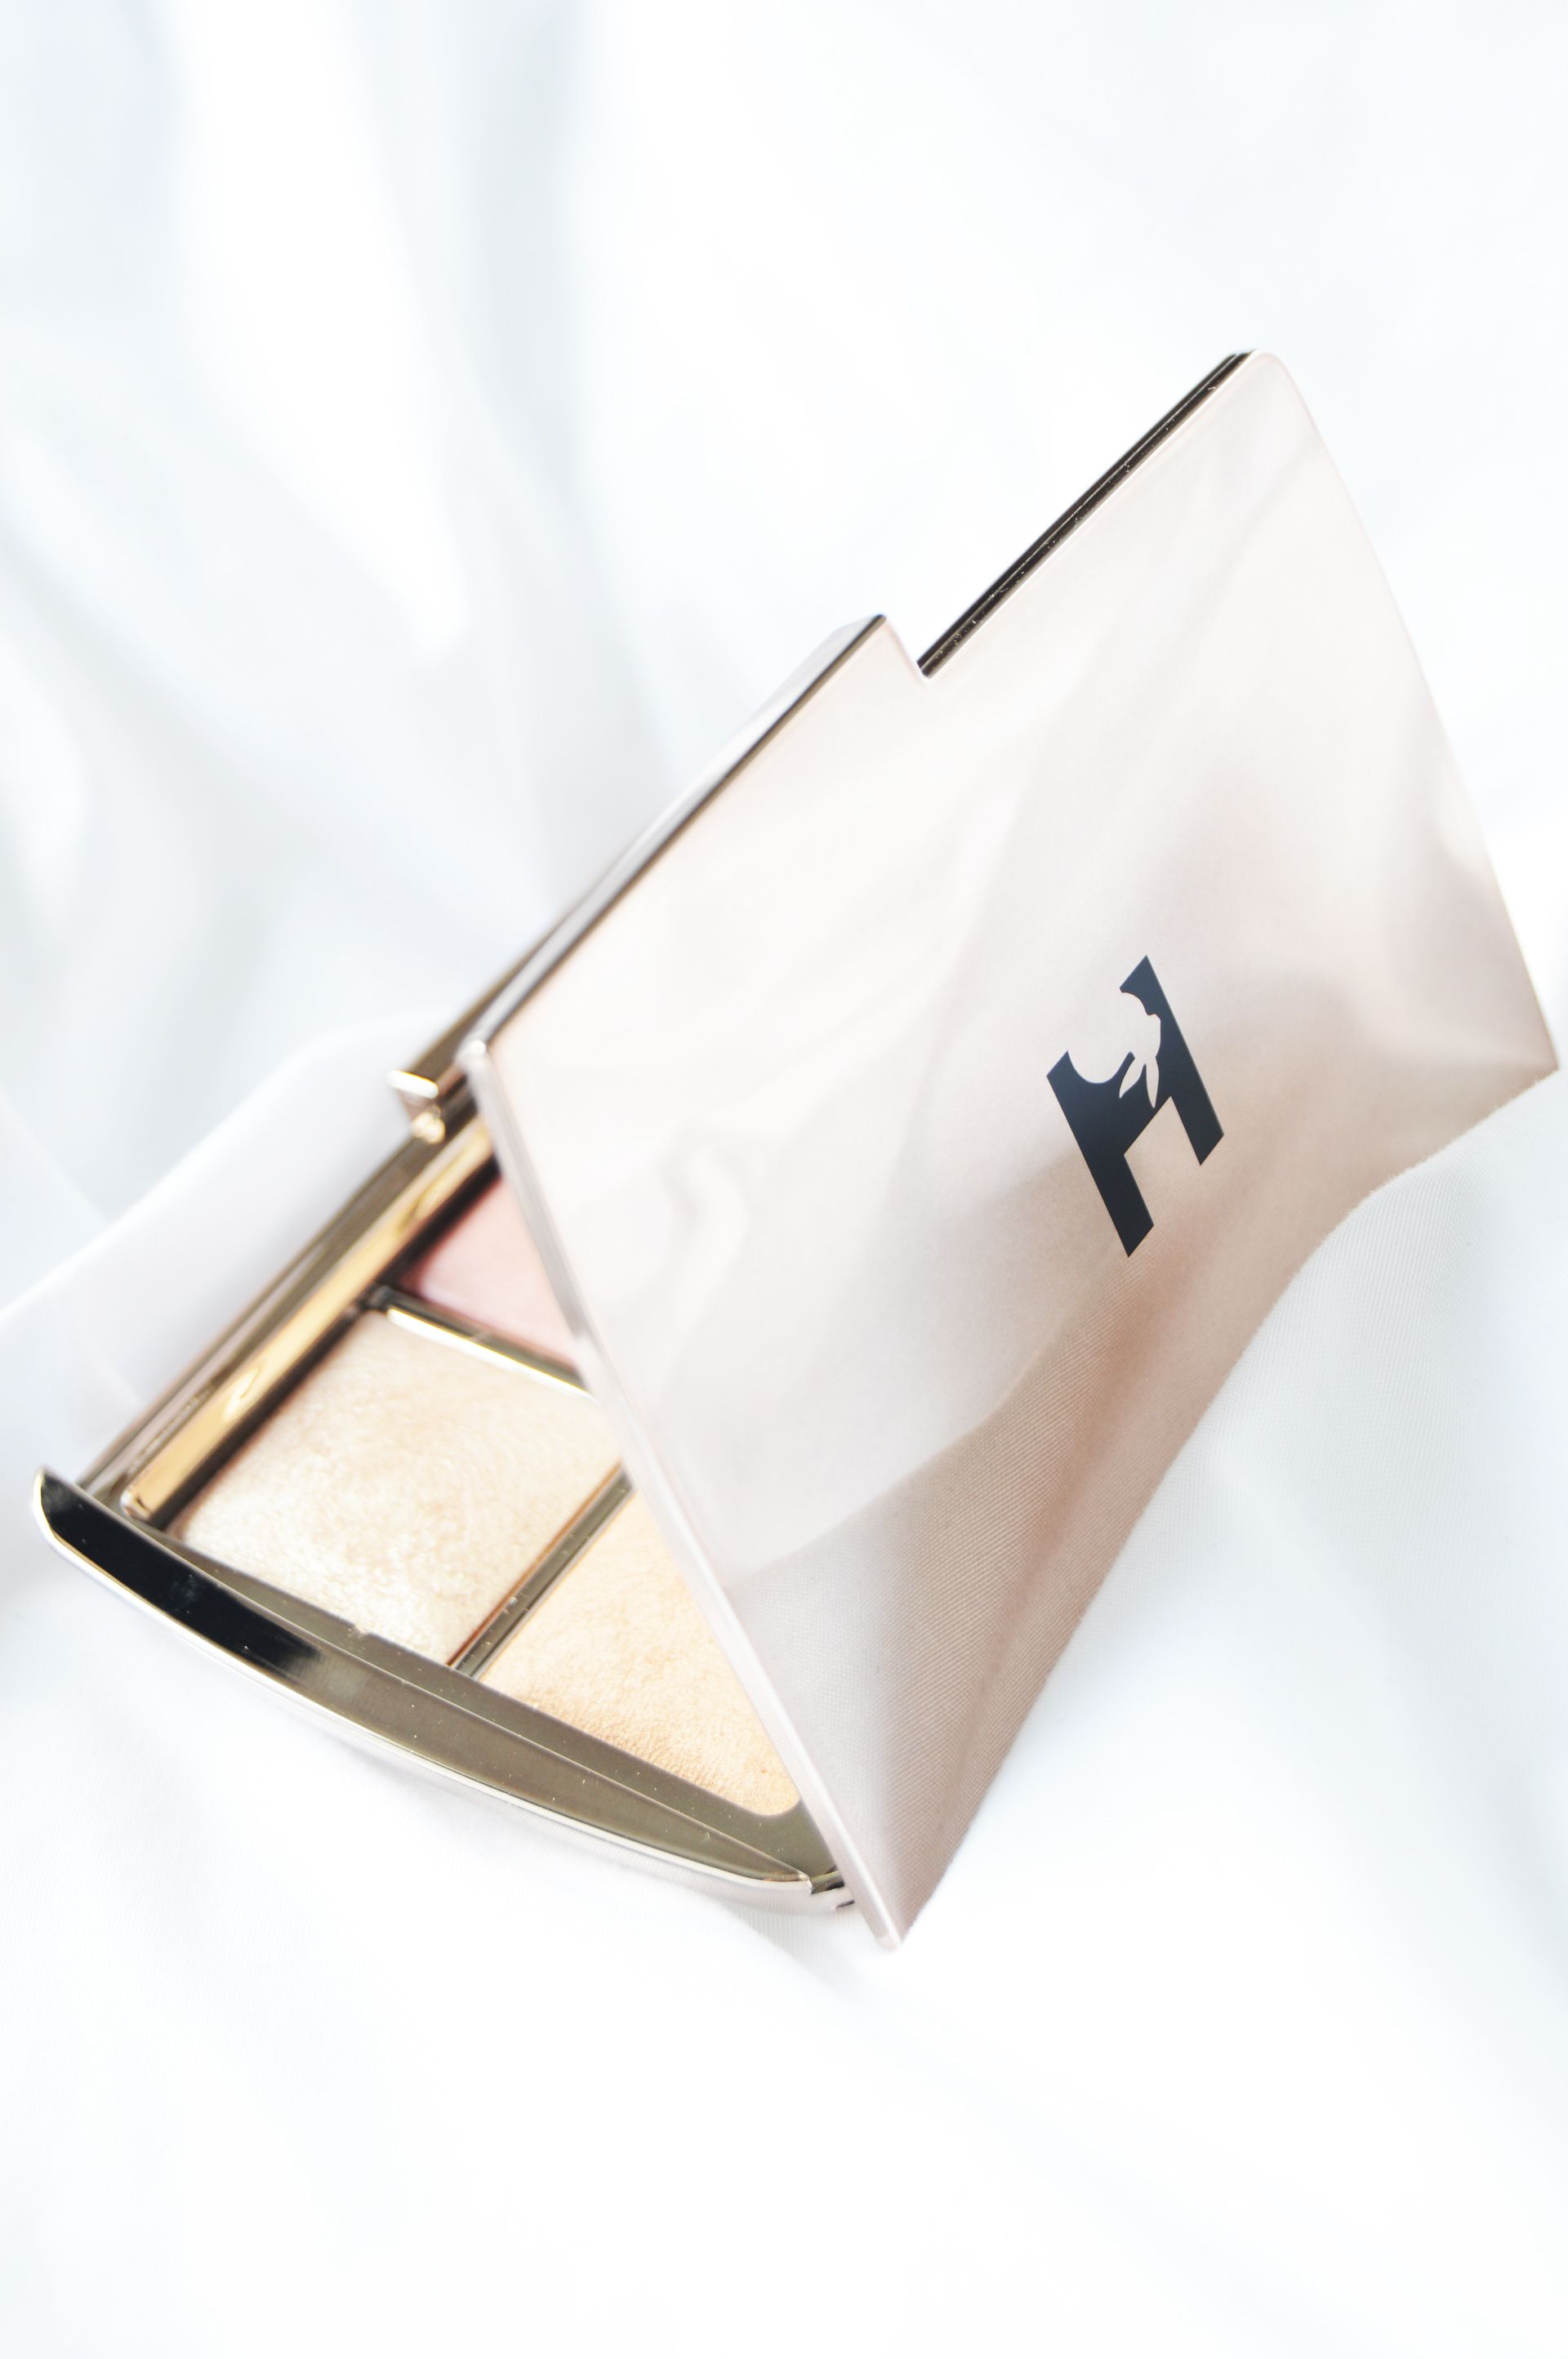 Hourglass Ambient Lighting Edit Unlocked Palette is Hourglass' first release with the new logo | Hourglass Ambient Lighting Edit Unlocked Palette Review